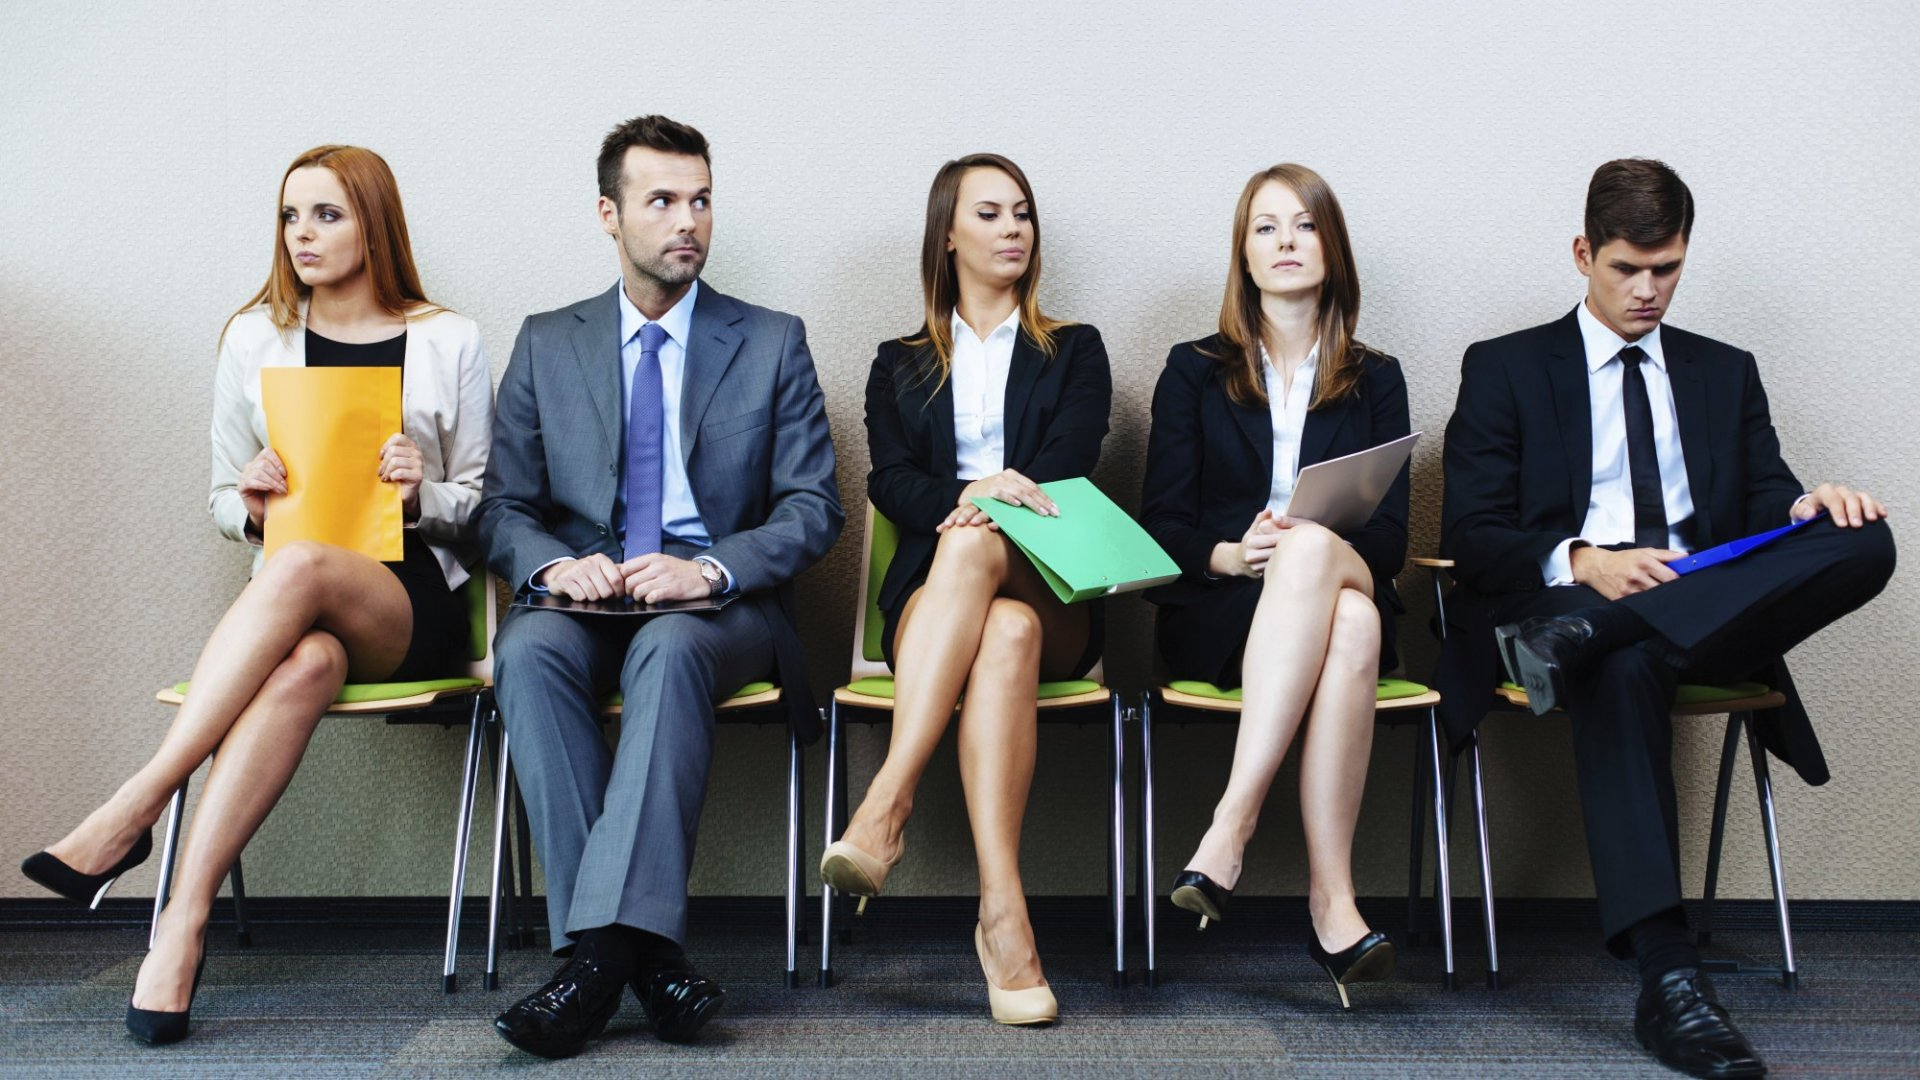 3 Hiring Trends for 2016 and Beyond